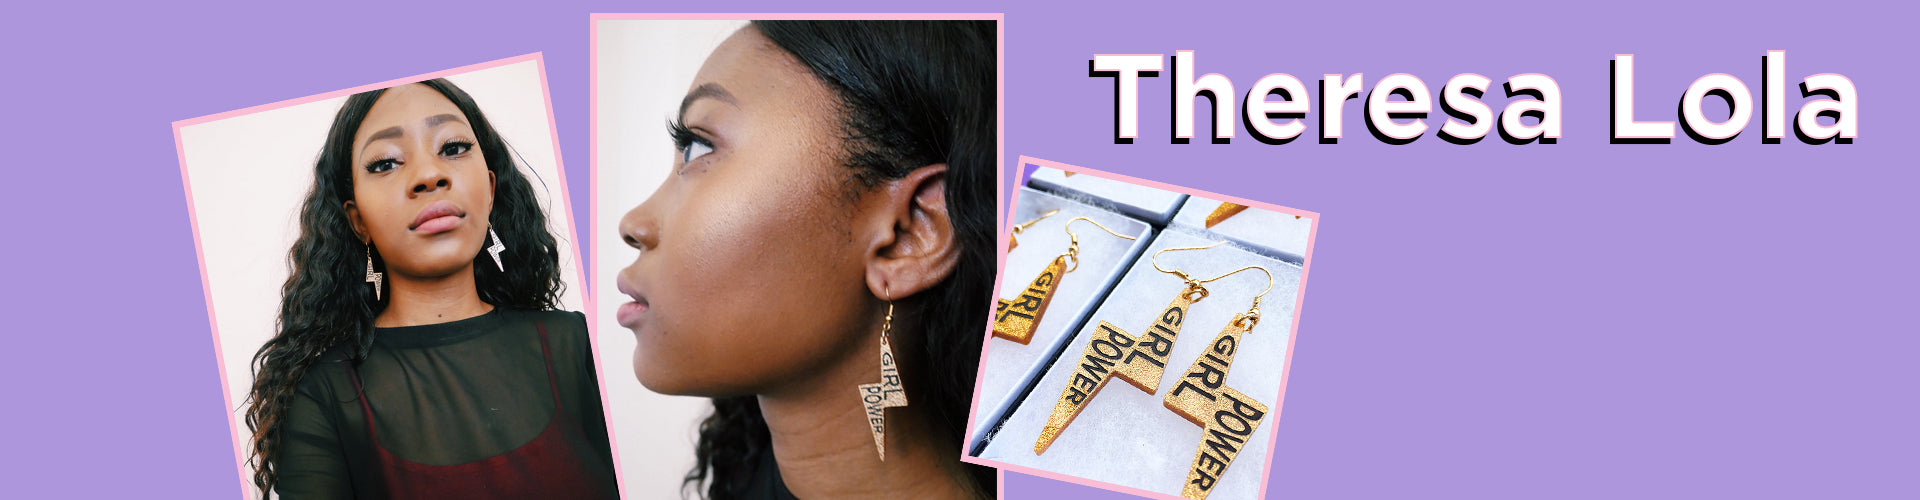 Women We Watch: Theresa Lola